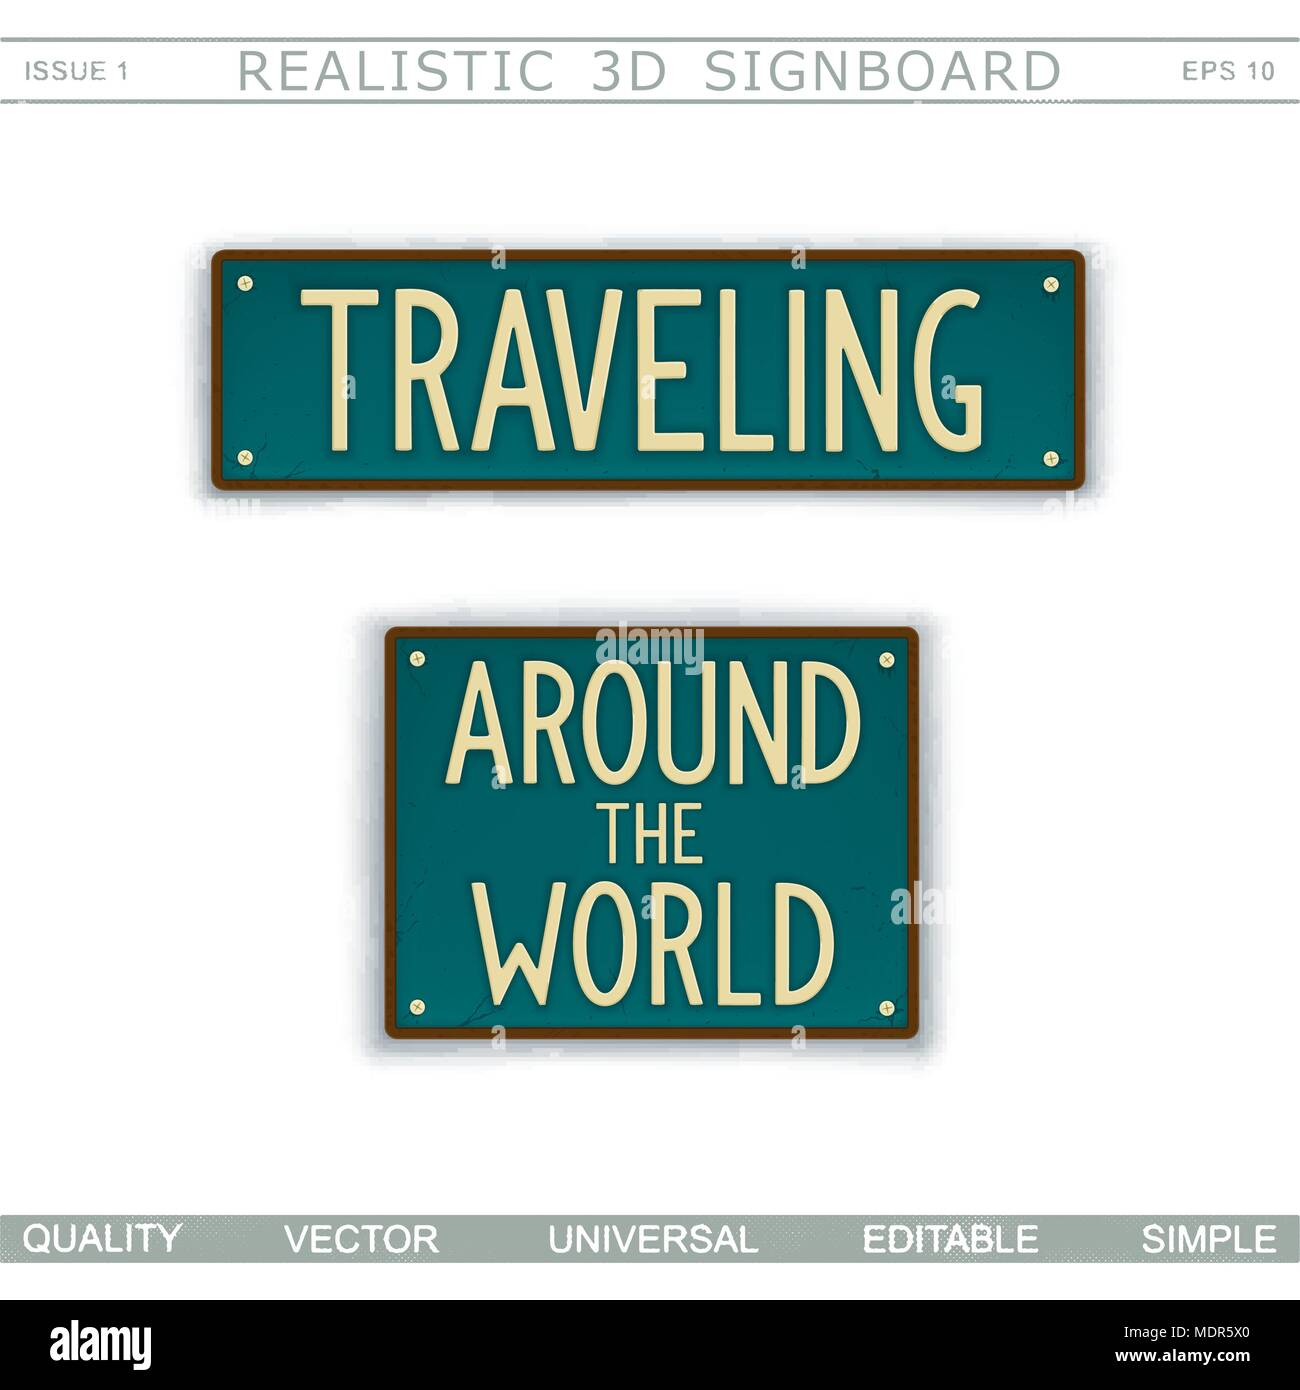 traveling around the world vintage signboard stylized license